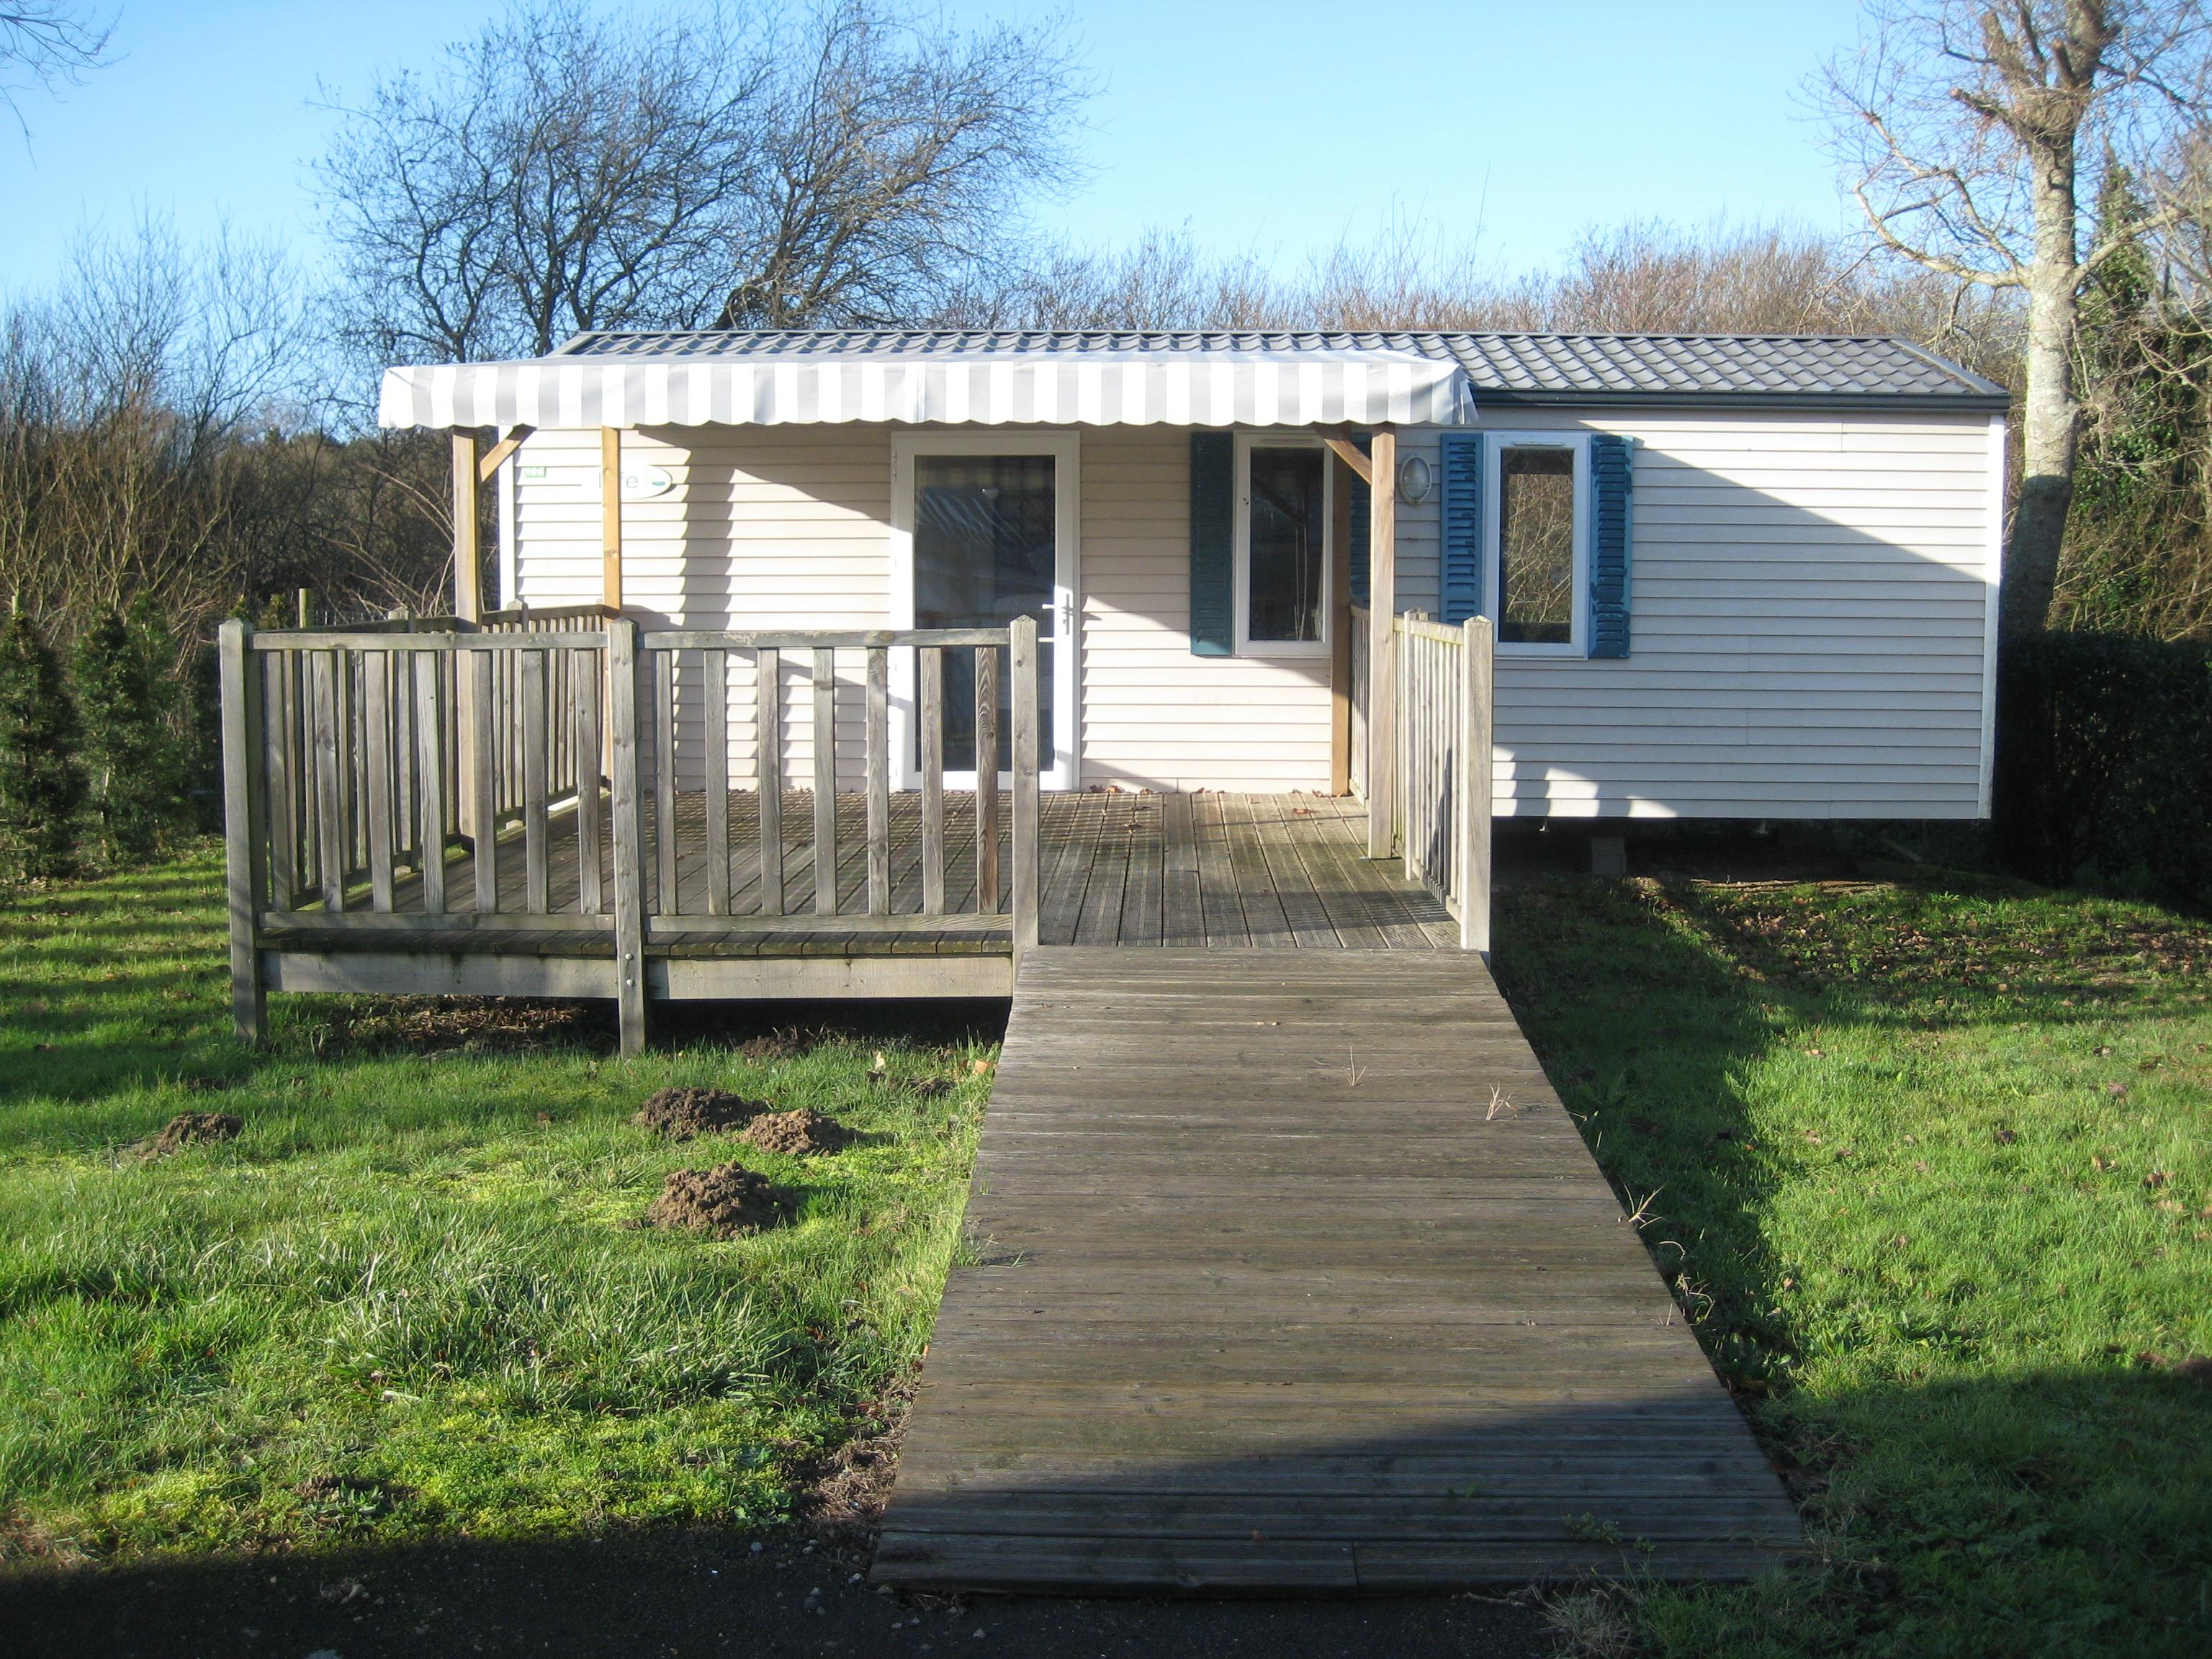 Location - Mobilhome Handicapé Pmr O'hara 834 Life 2 Chambres 33M² Avec Terrasse - Camping Pen Palud